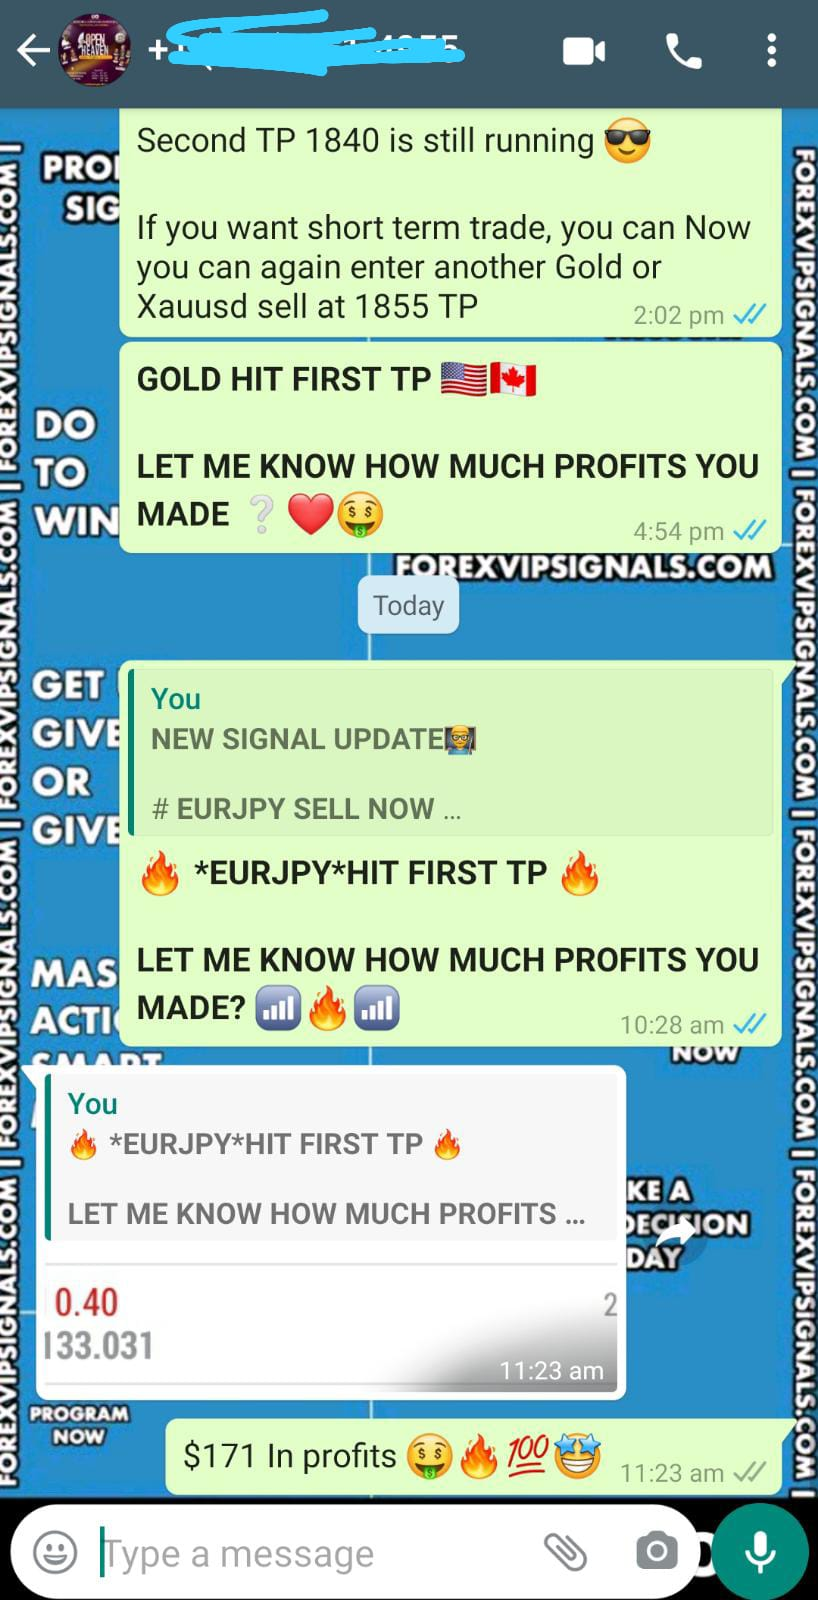 real time forex signals with forex vip signals